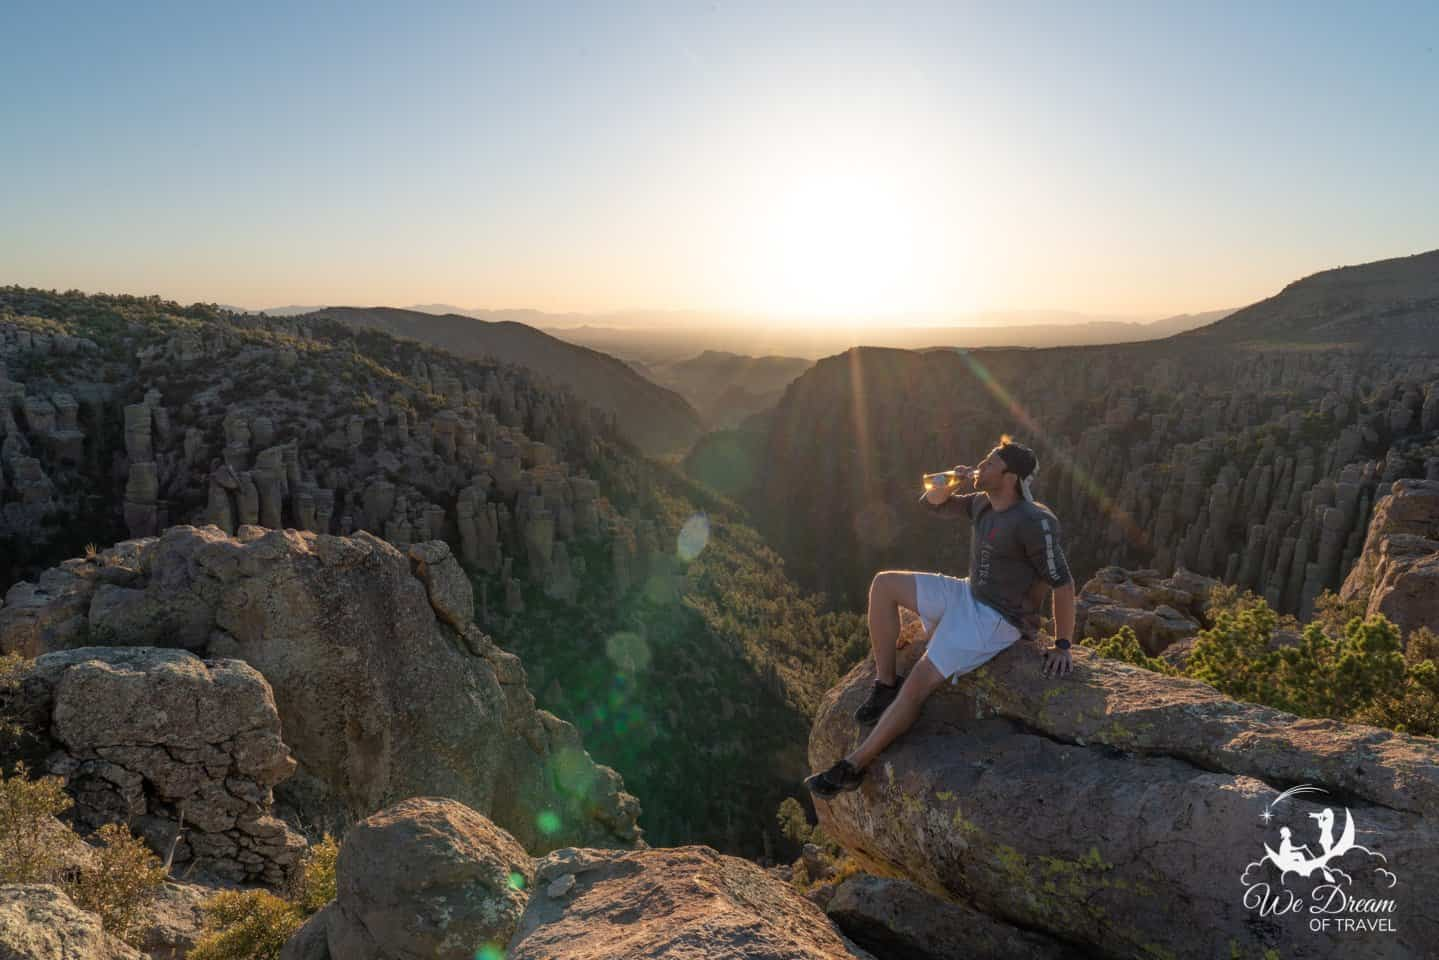 Enjoying a brew with a view for sunset at Inspiration Point in Chiricahua NM.